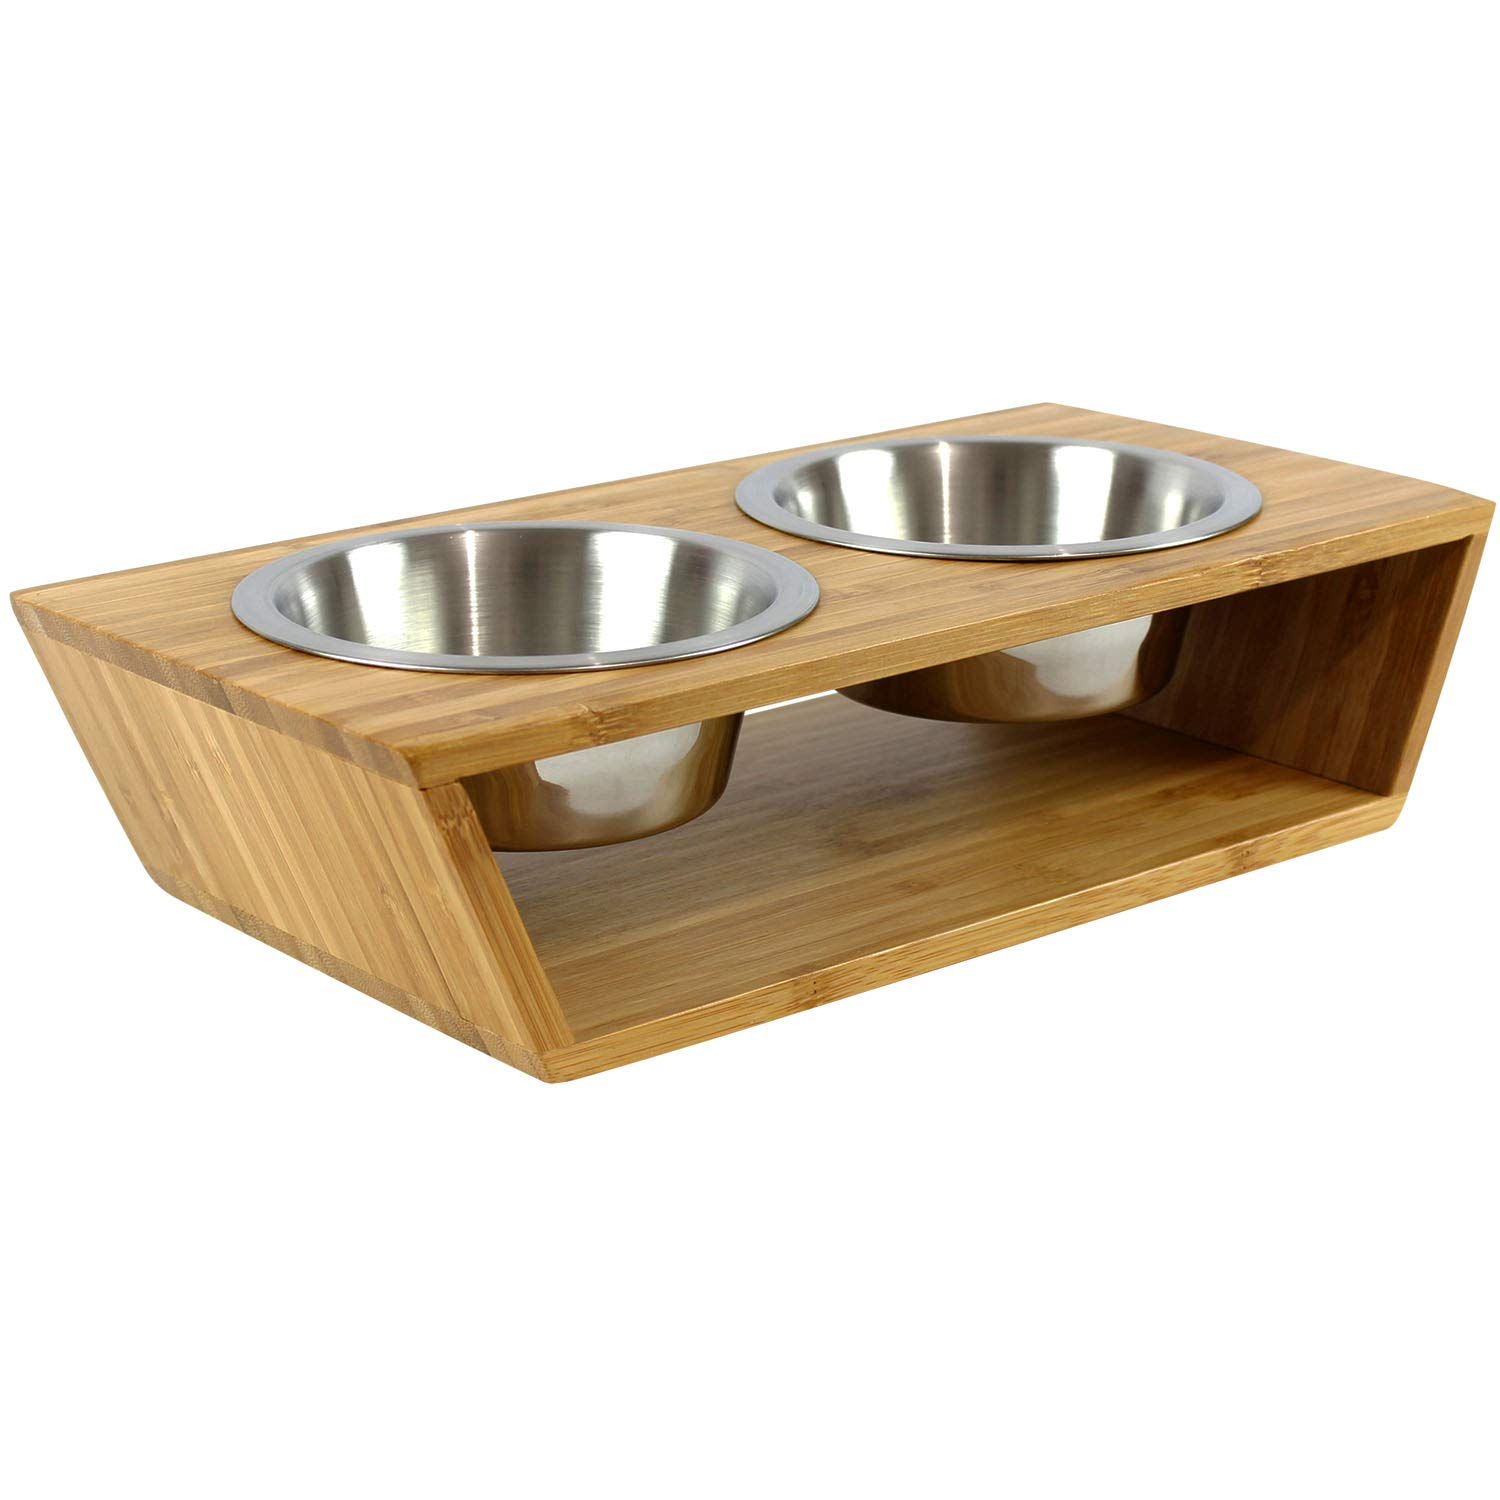 Wantryapet 4'' Elevated Dog Cat Dog Feeder with 2 Stainless Steel Bowls, Bamboo Raised Stand Pet Feeder Perfect for Small Dogs & Cats